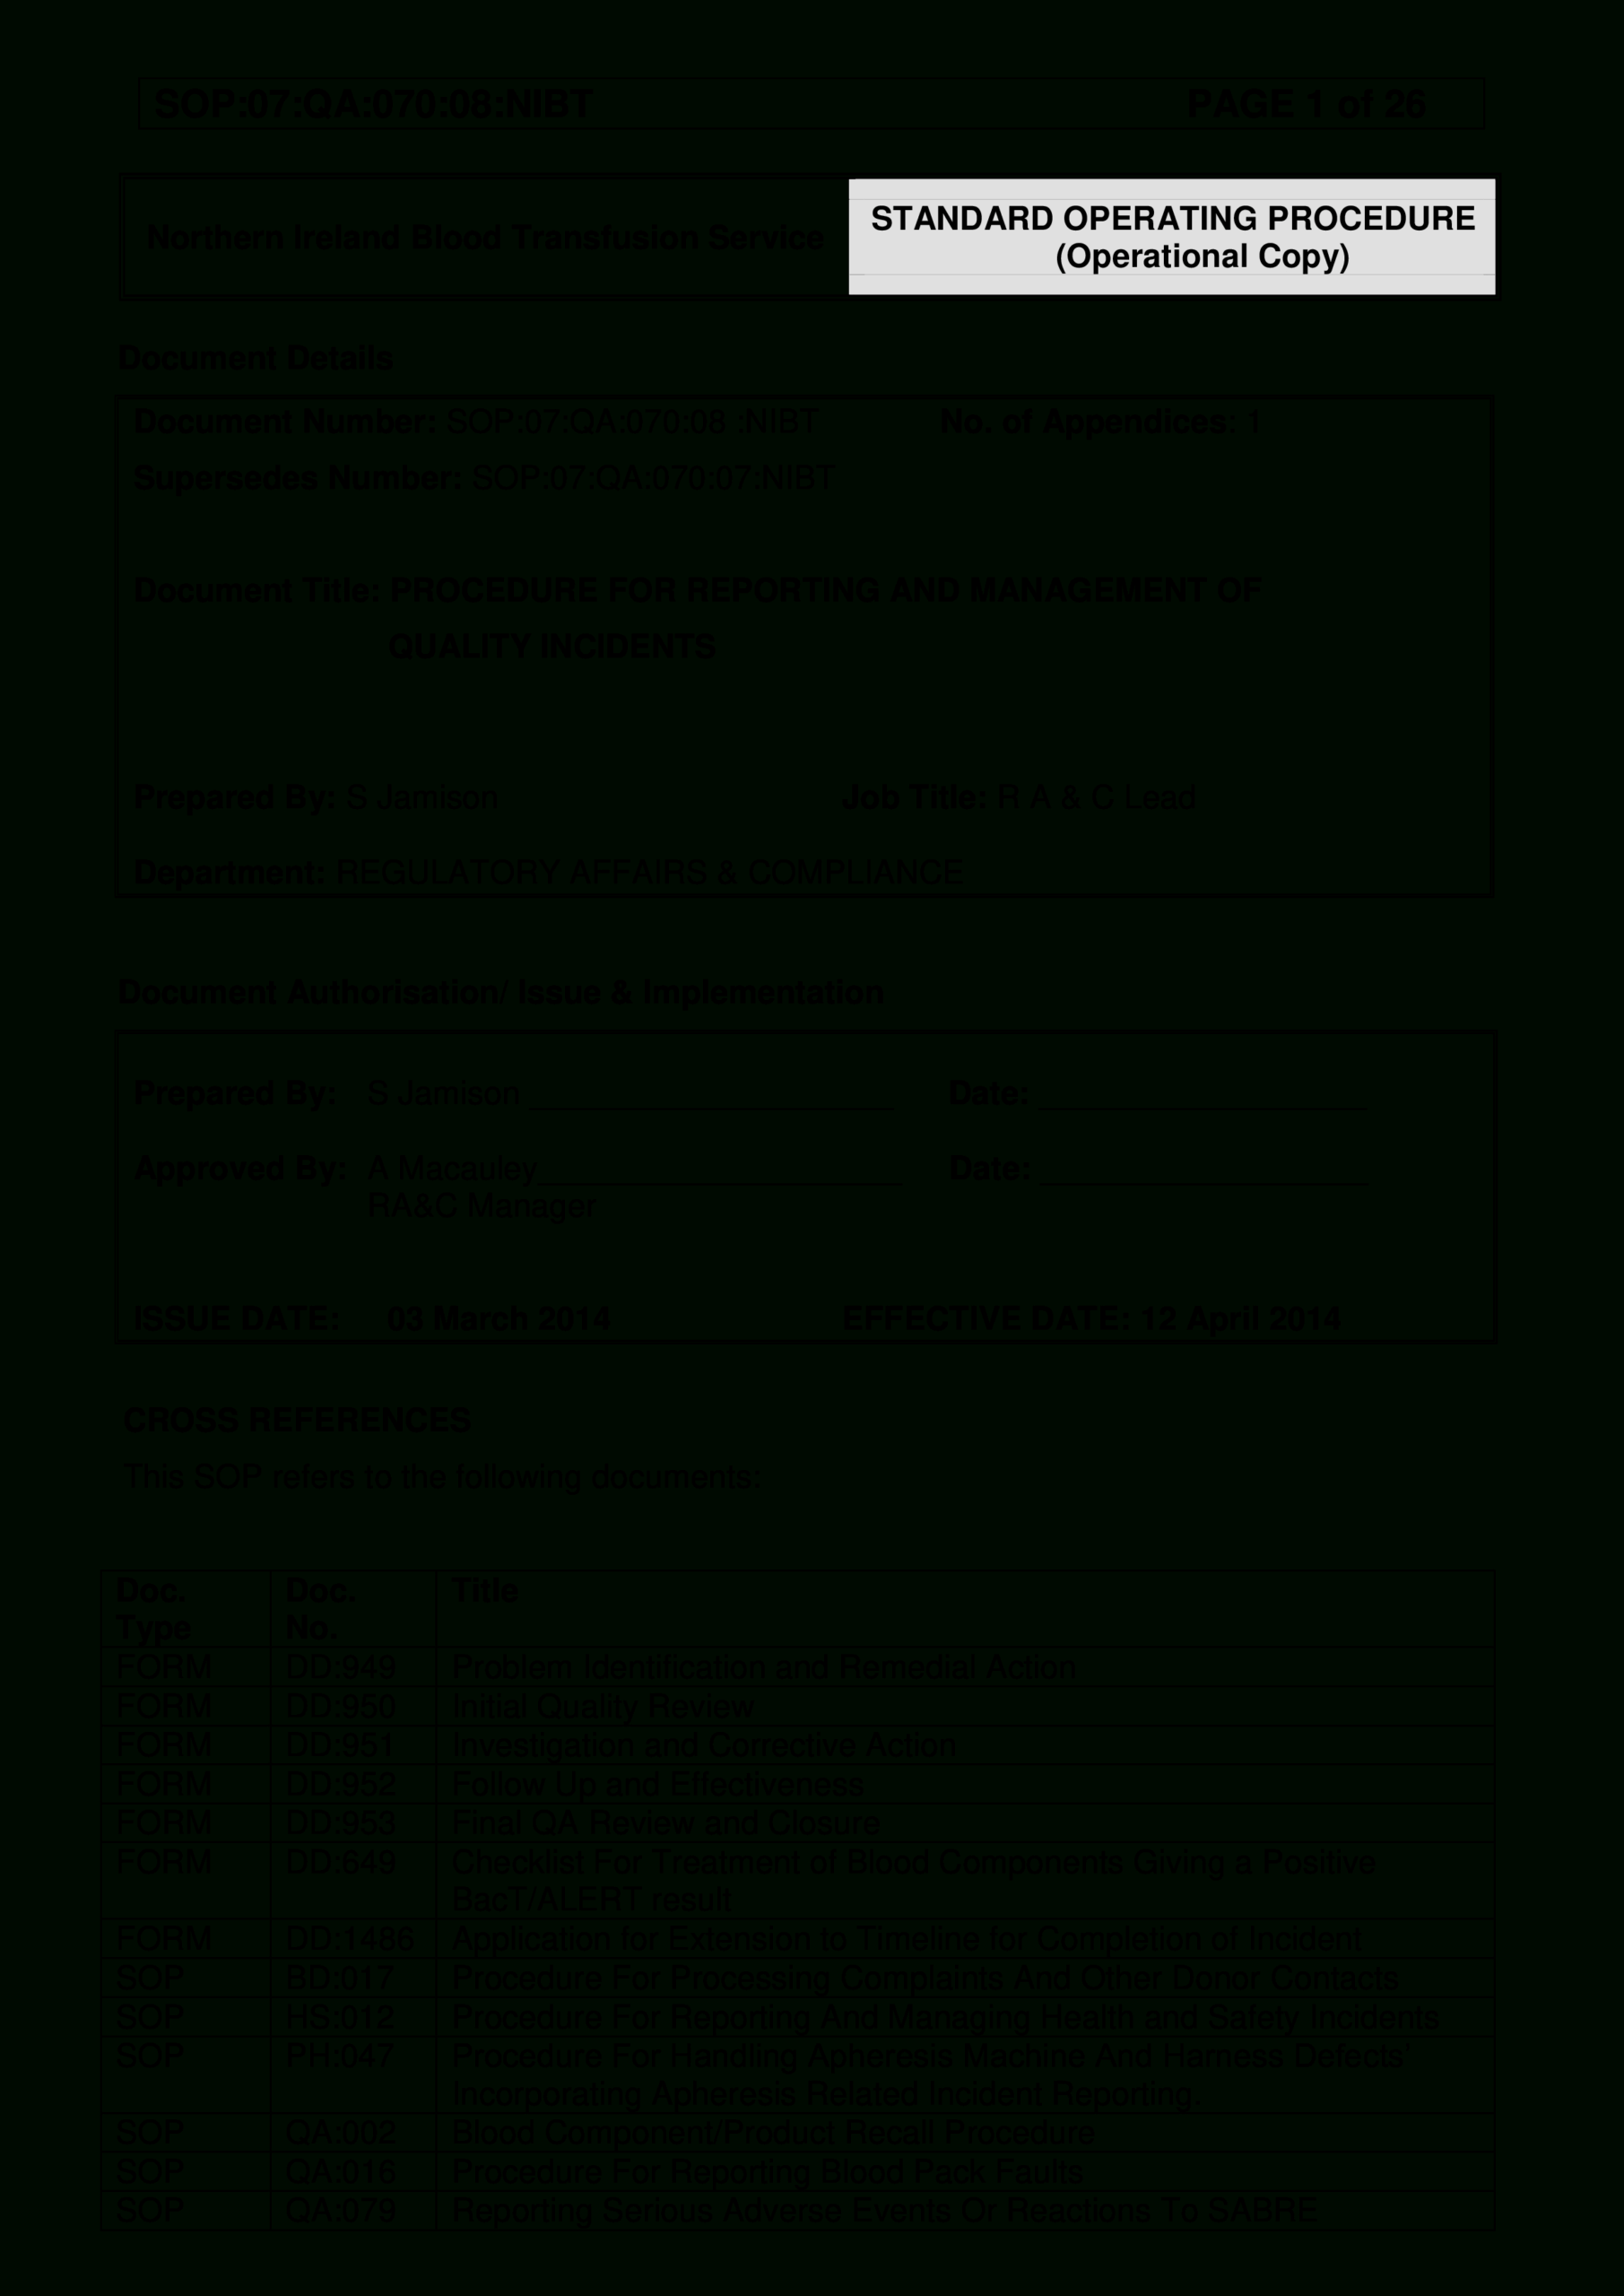 Quality Incident Report Format | Templates At For Incident Report Form Template Doc